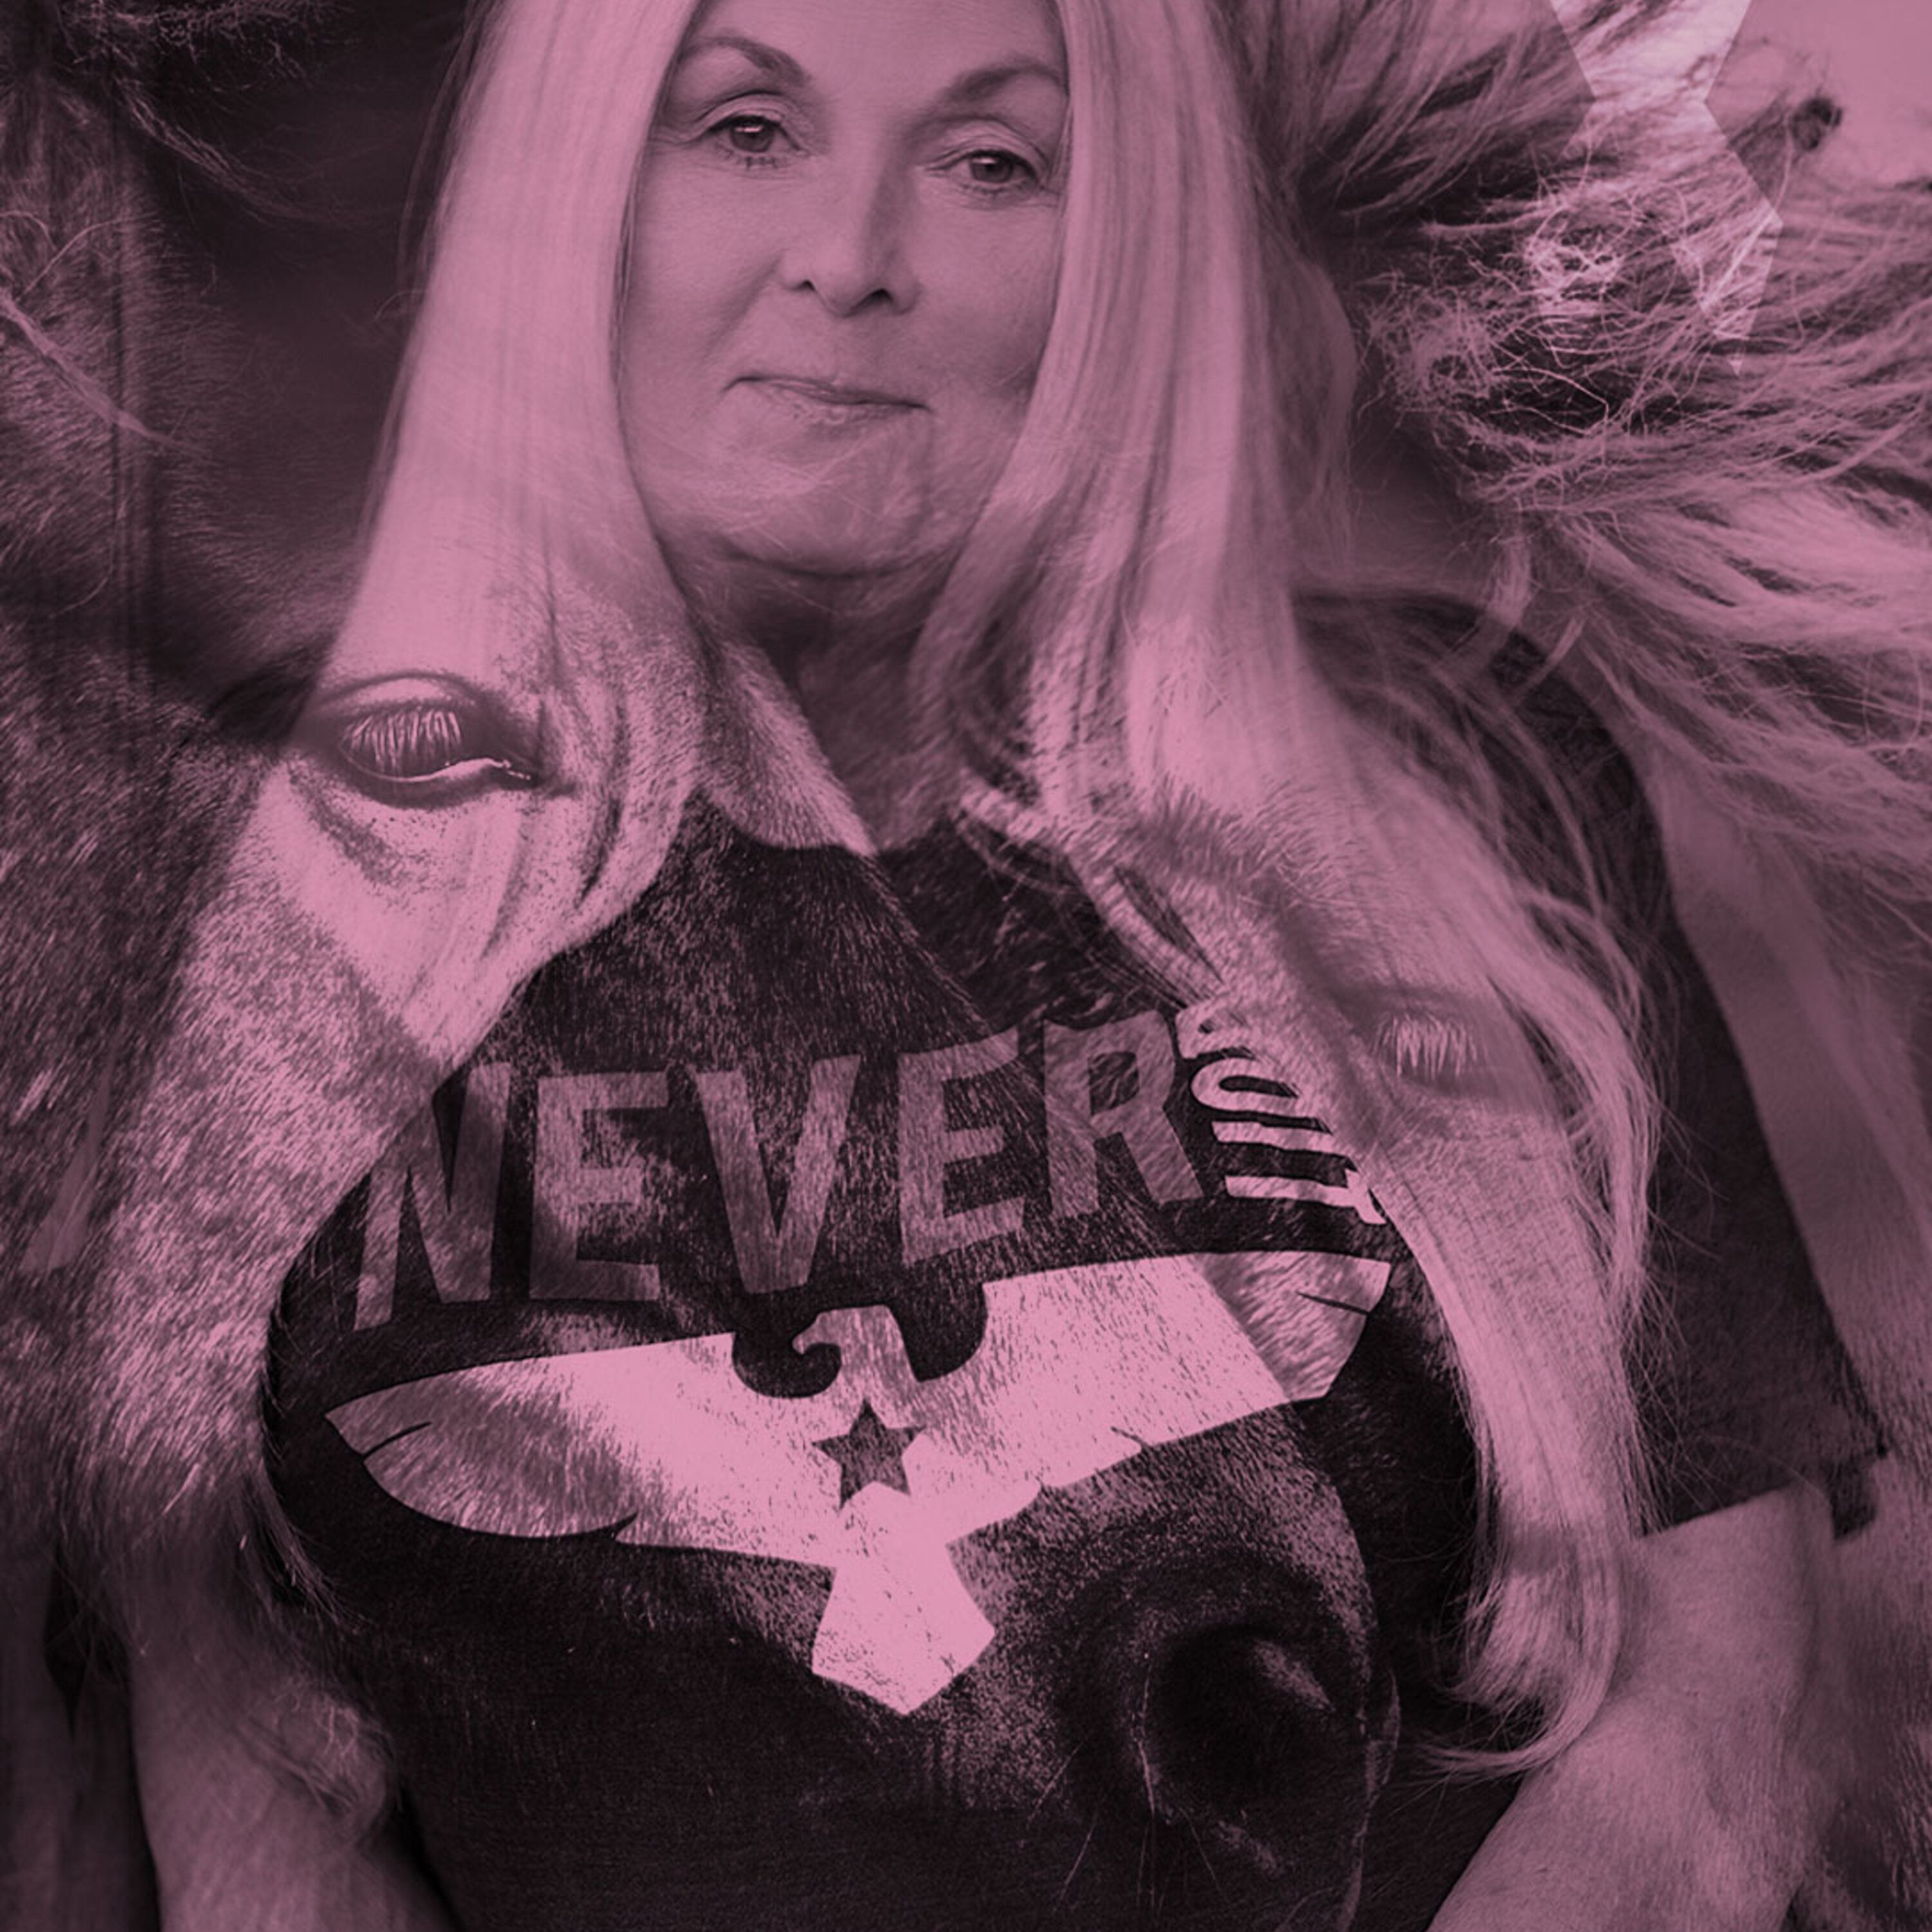 Holly Luttrell: Matriarch of the Luttrell Family, Mother of Marcus and Morgan Luttrell, Recent Breast Cancer Survivor